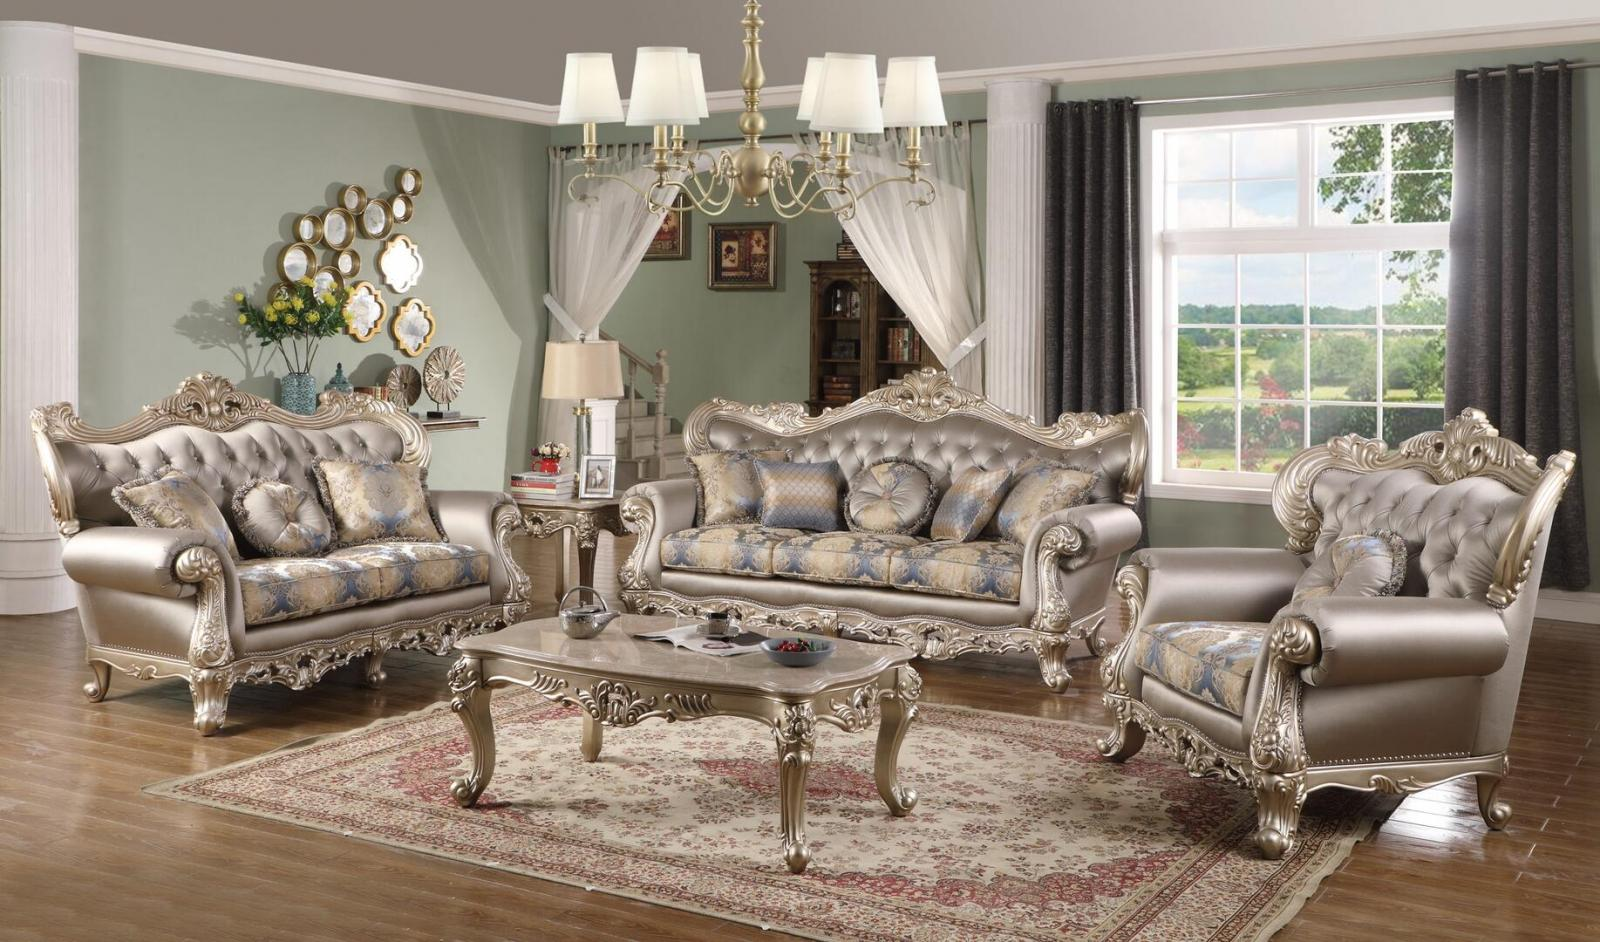 Transitional Silver Faux Leather Sofa Loveseat and Chair Set 3 pcs Cosmos Furniture Ariel-Set-3